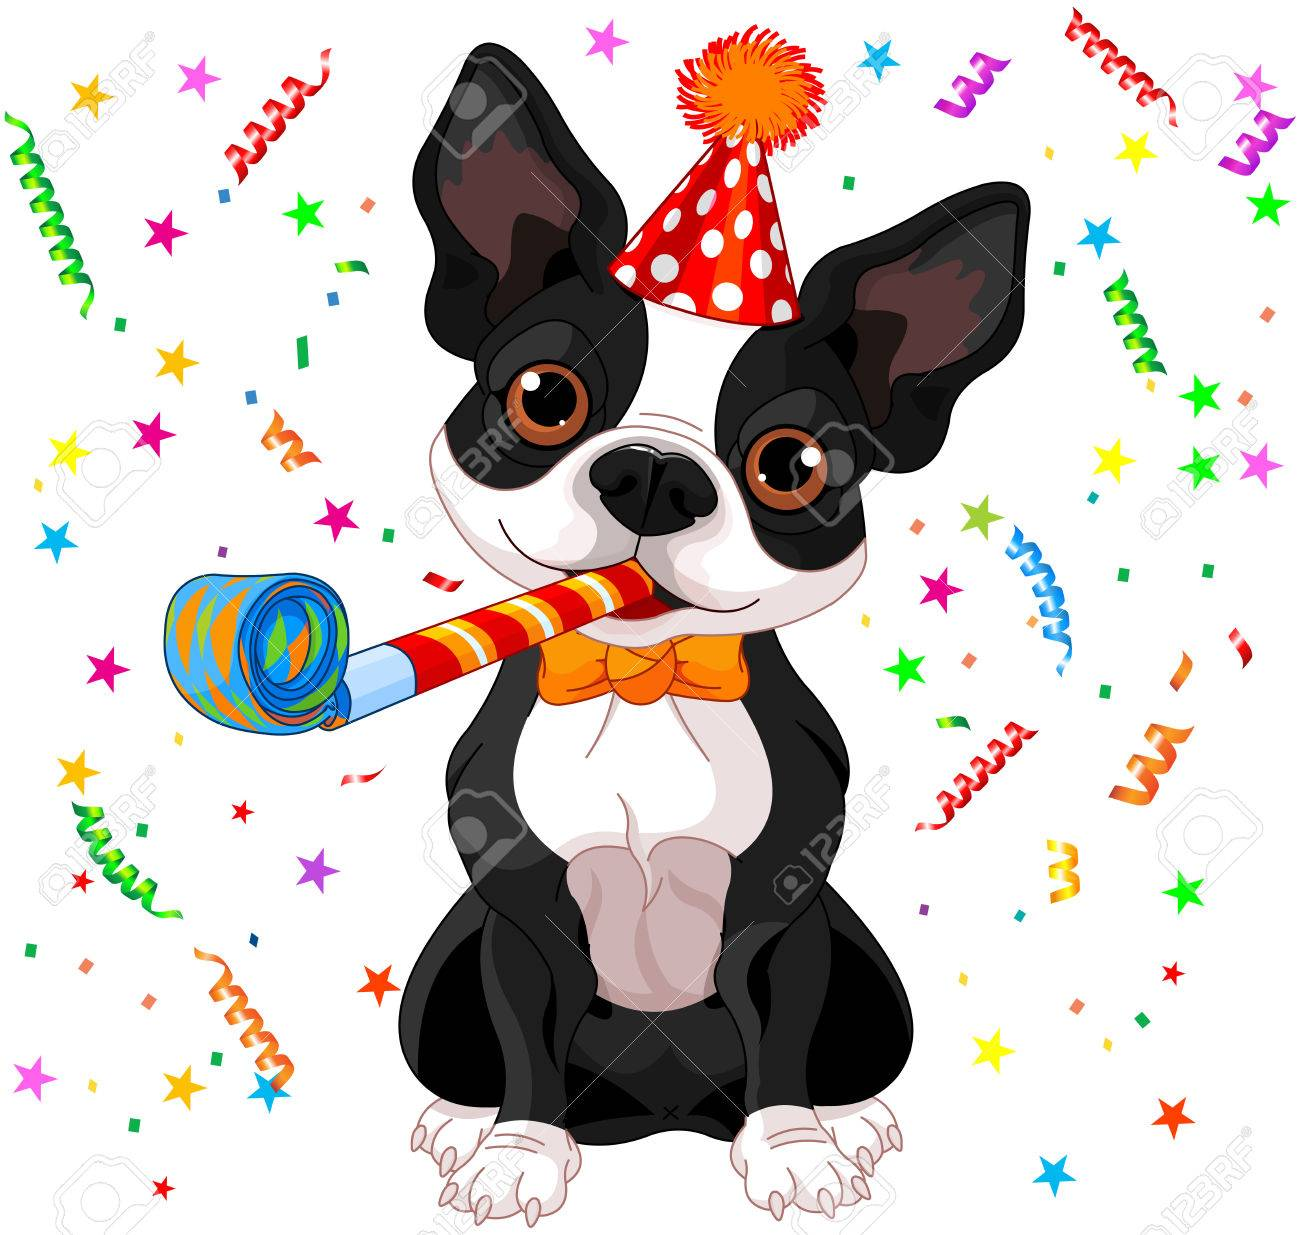 Journal de bord d'une éduc' en devenir - Page 2 35588778-illustration-of-cute-boston-terrier-celebrating